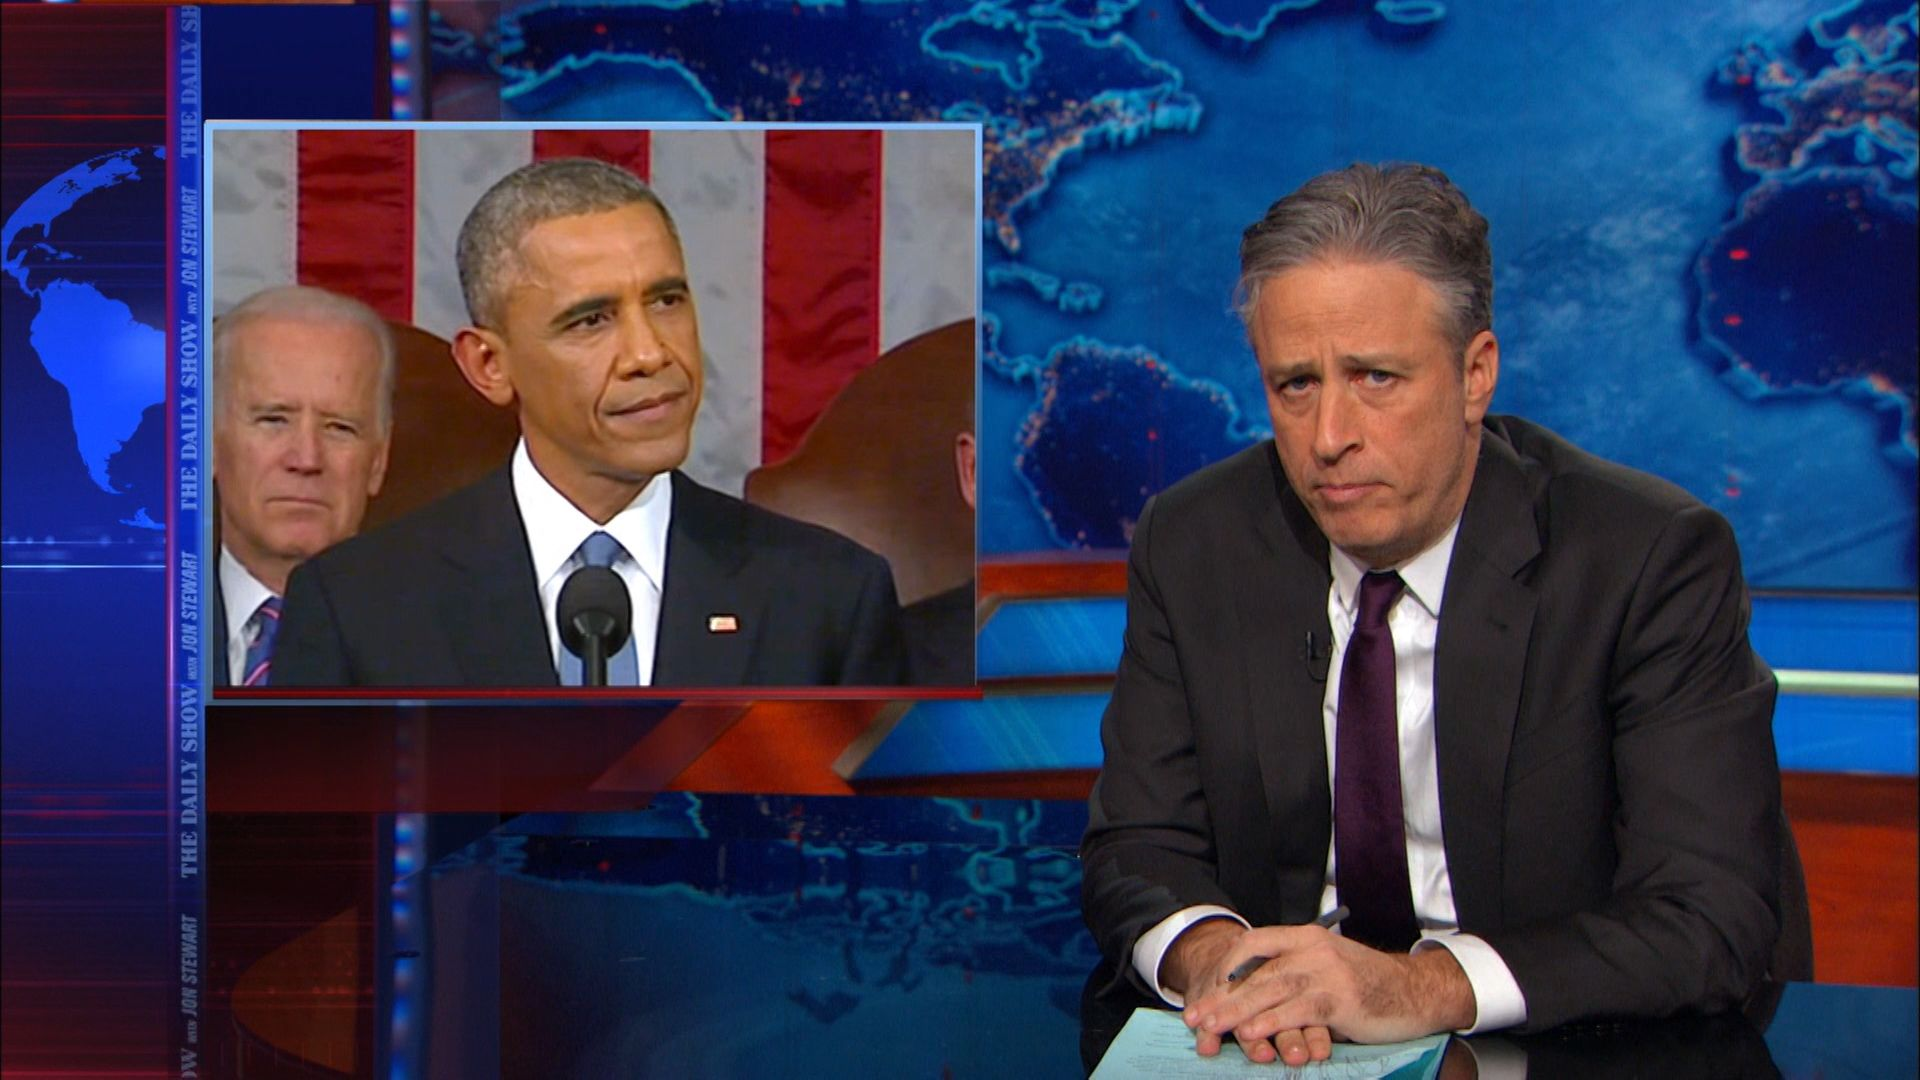 Big Speech 6 - The Daily Show with Jon Stewart (Video Clip) | Comedy Central1920 x 1080